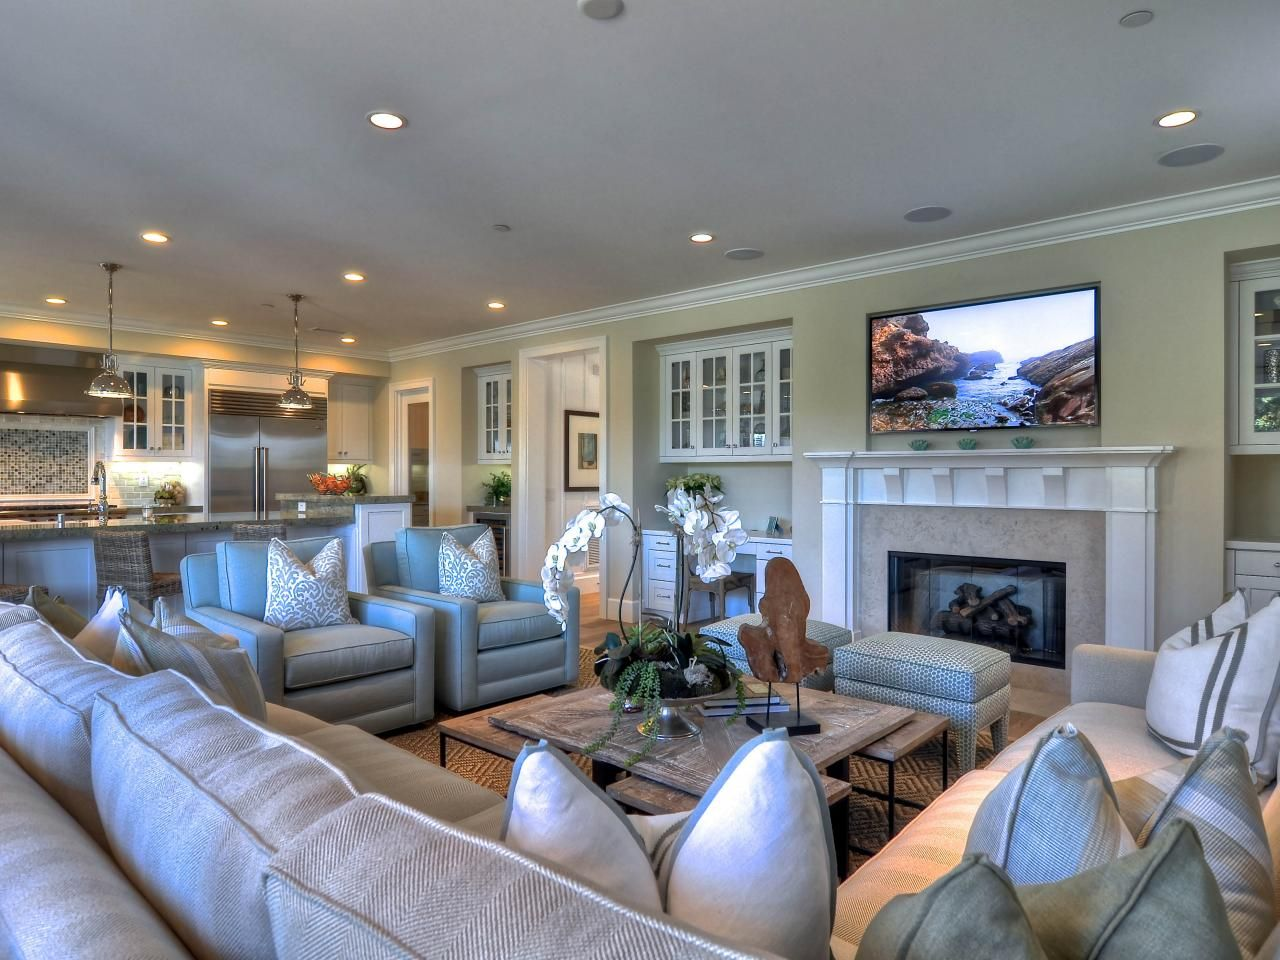 Coastal decor is found in the details in this spacious for Large living room design ideas